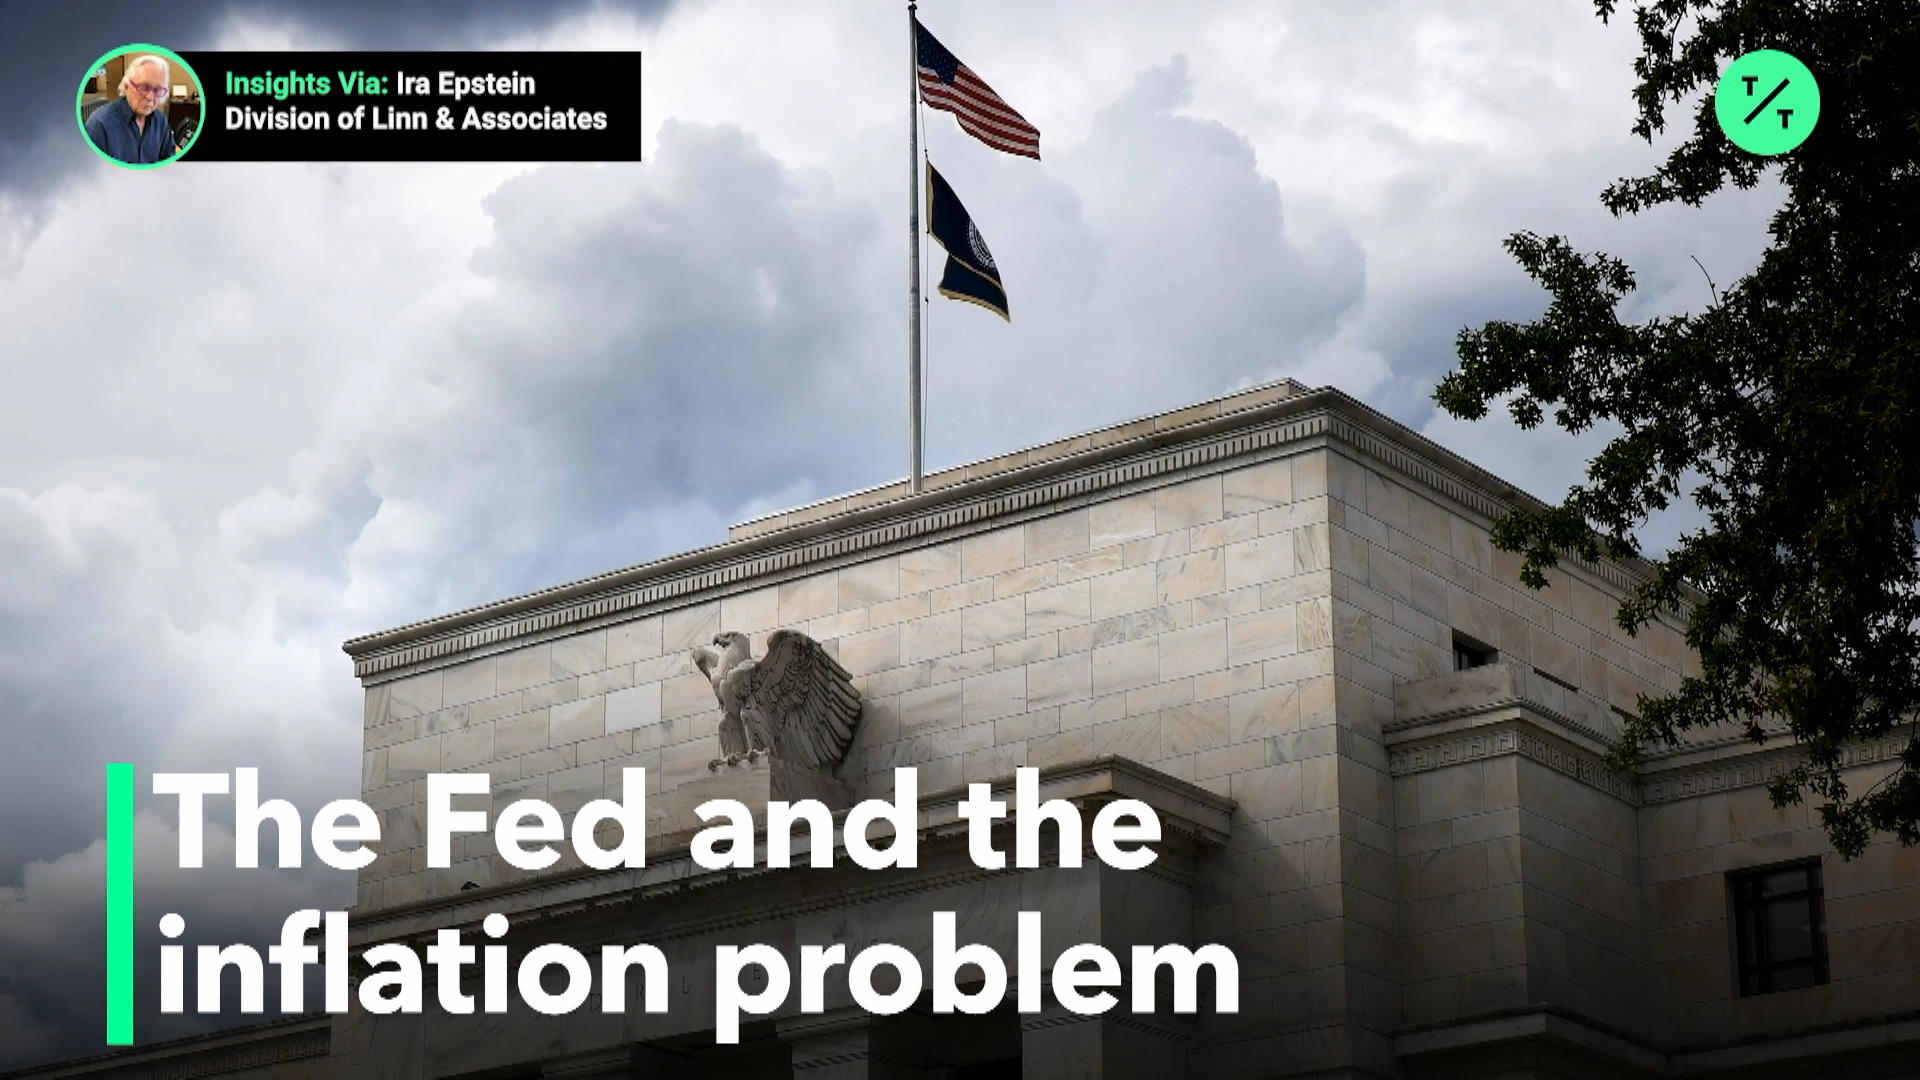 Why can't the Fed hit inflation target?